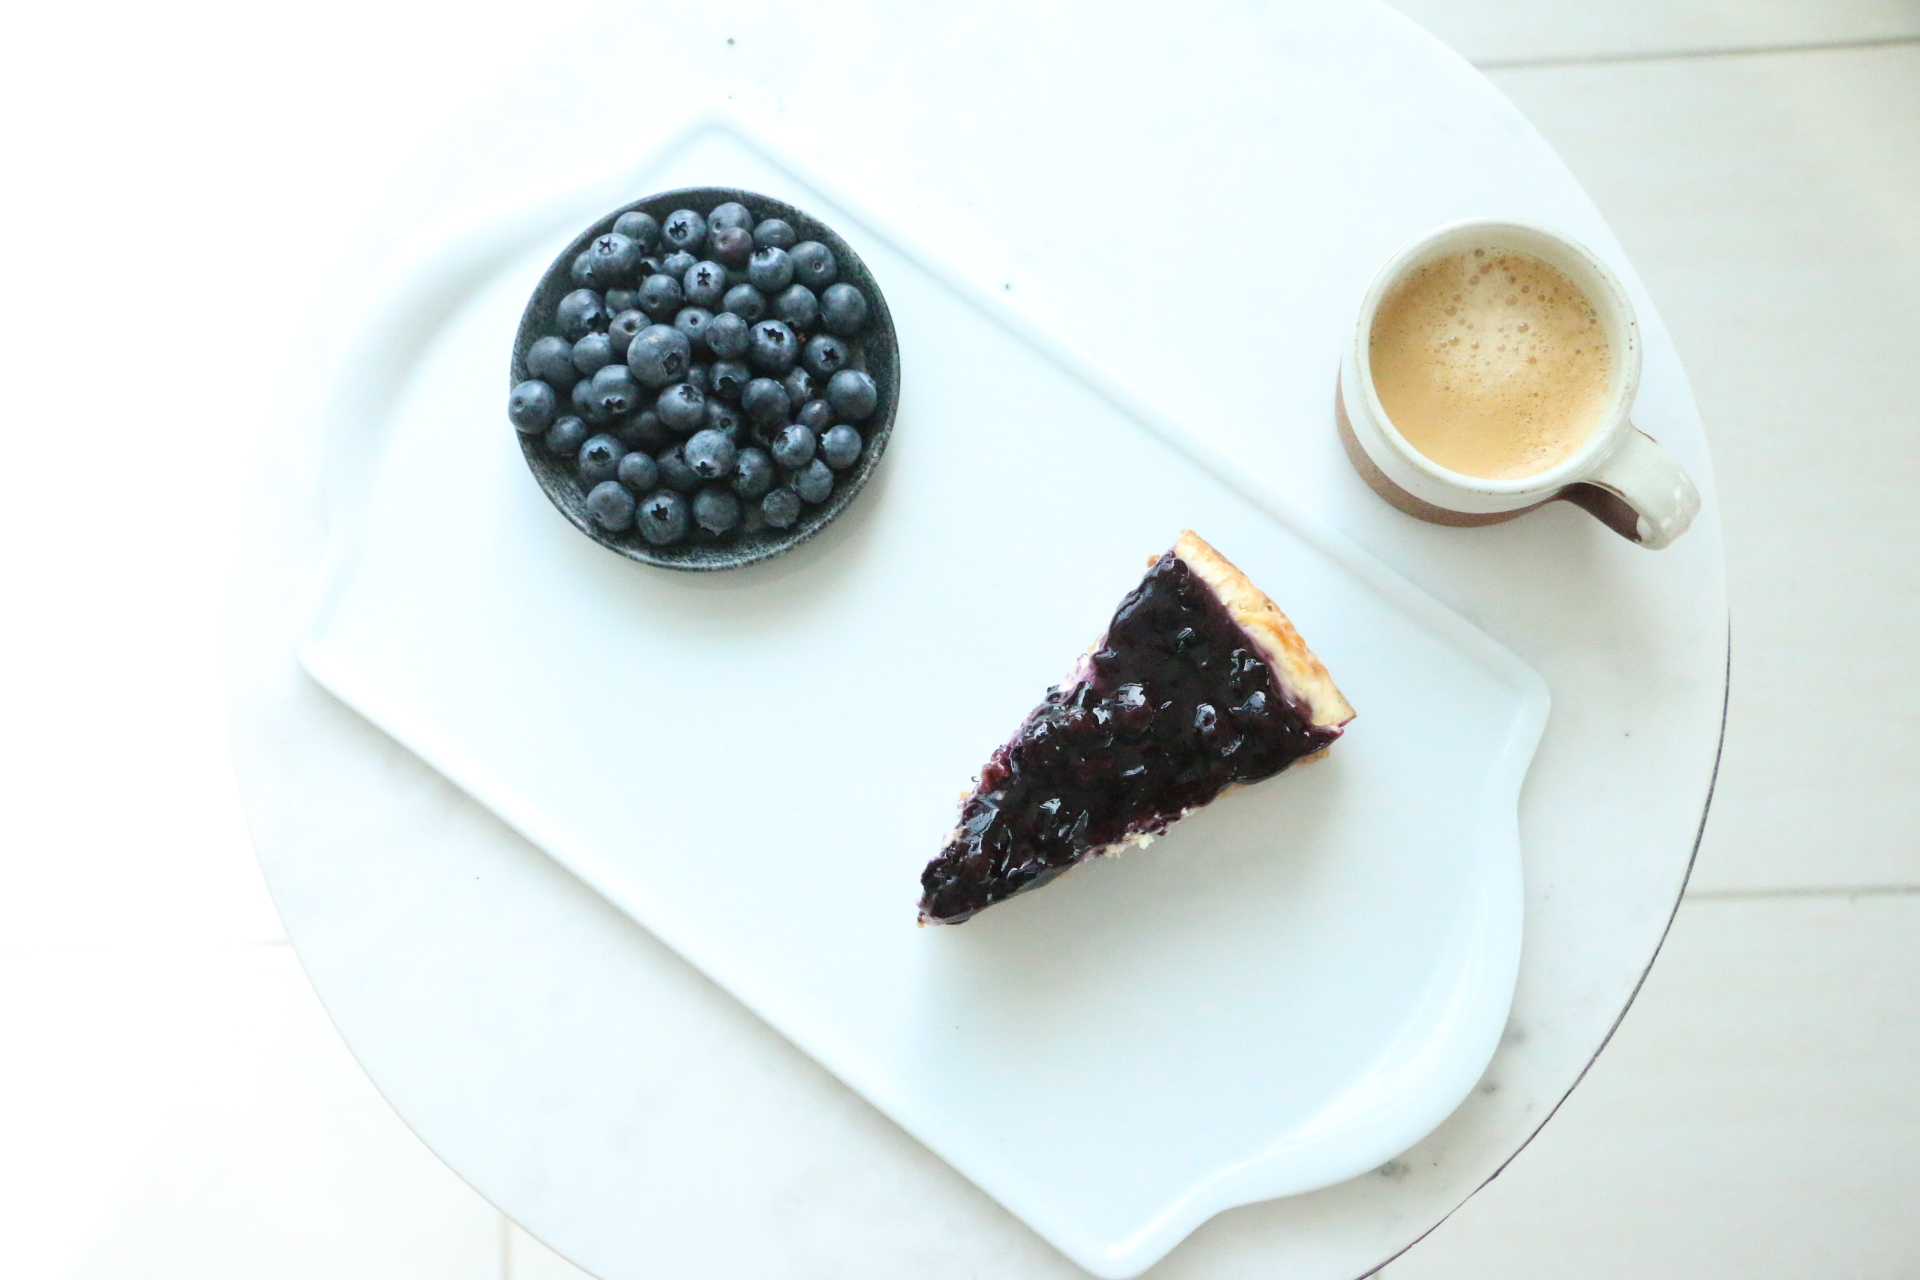 A divine blueberry baked cheesecake